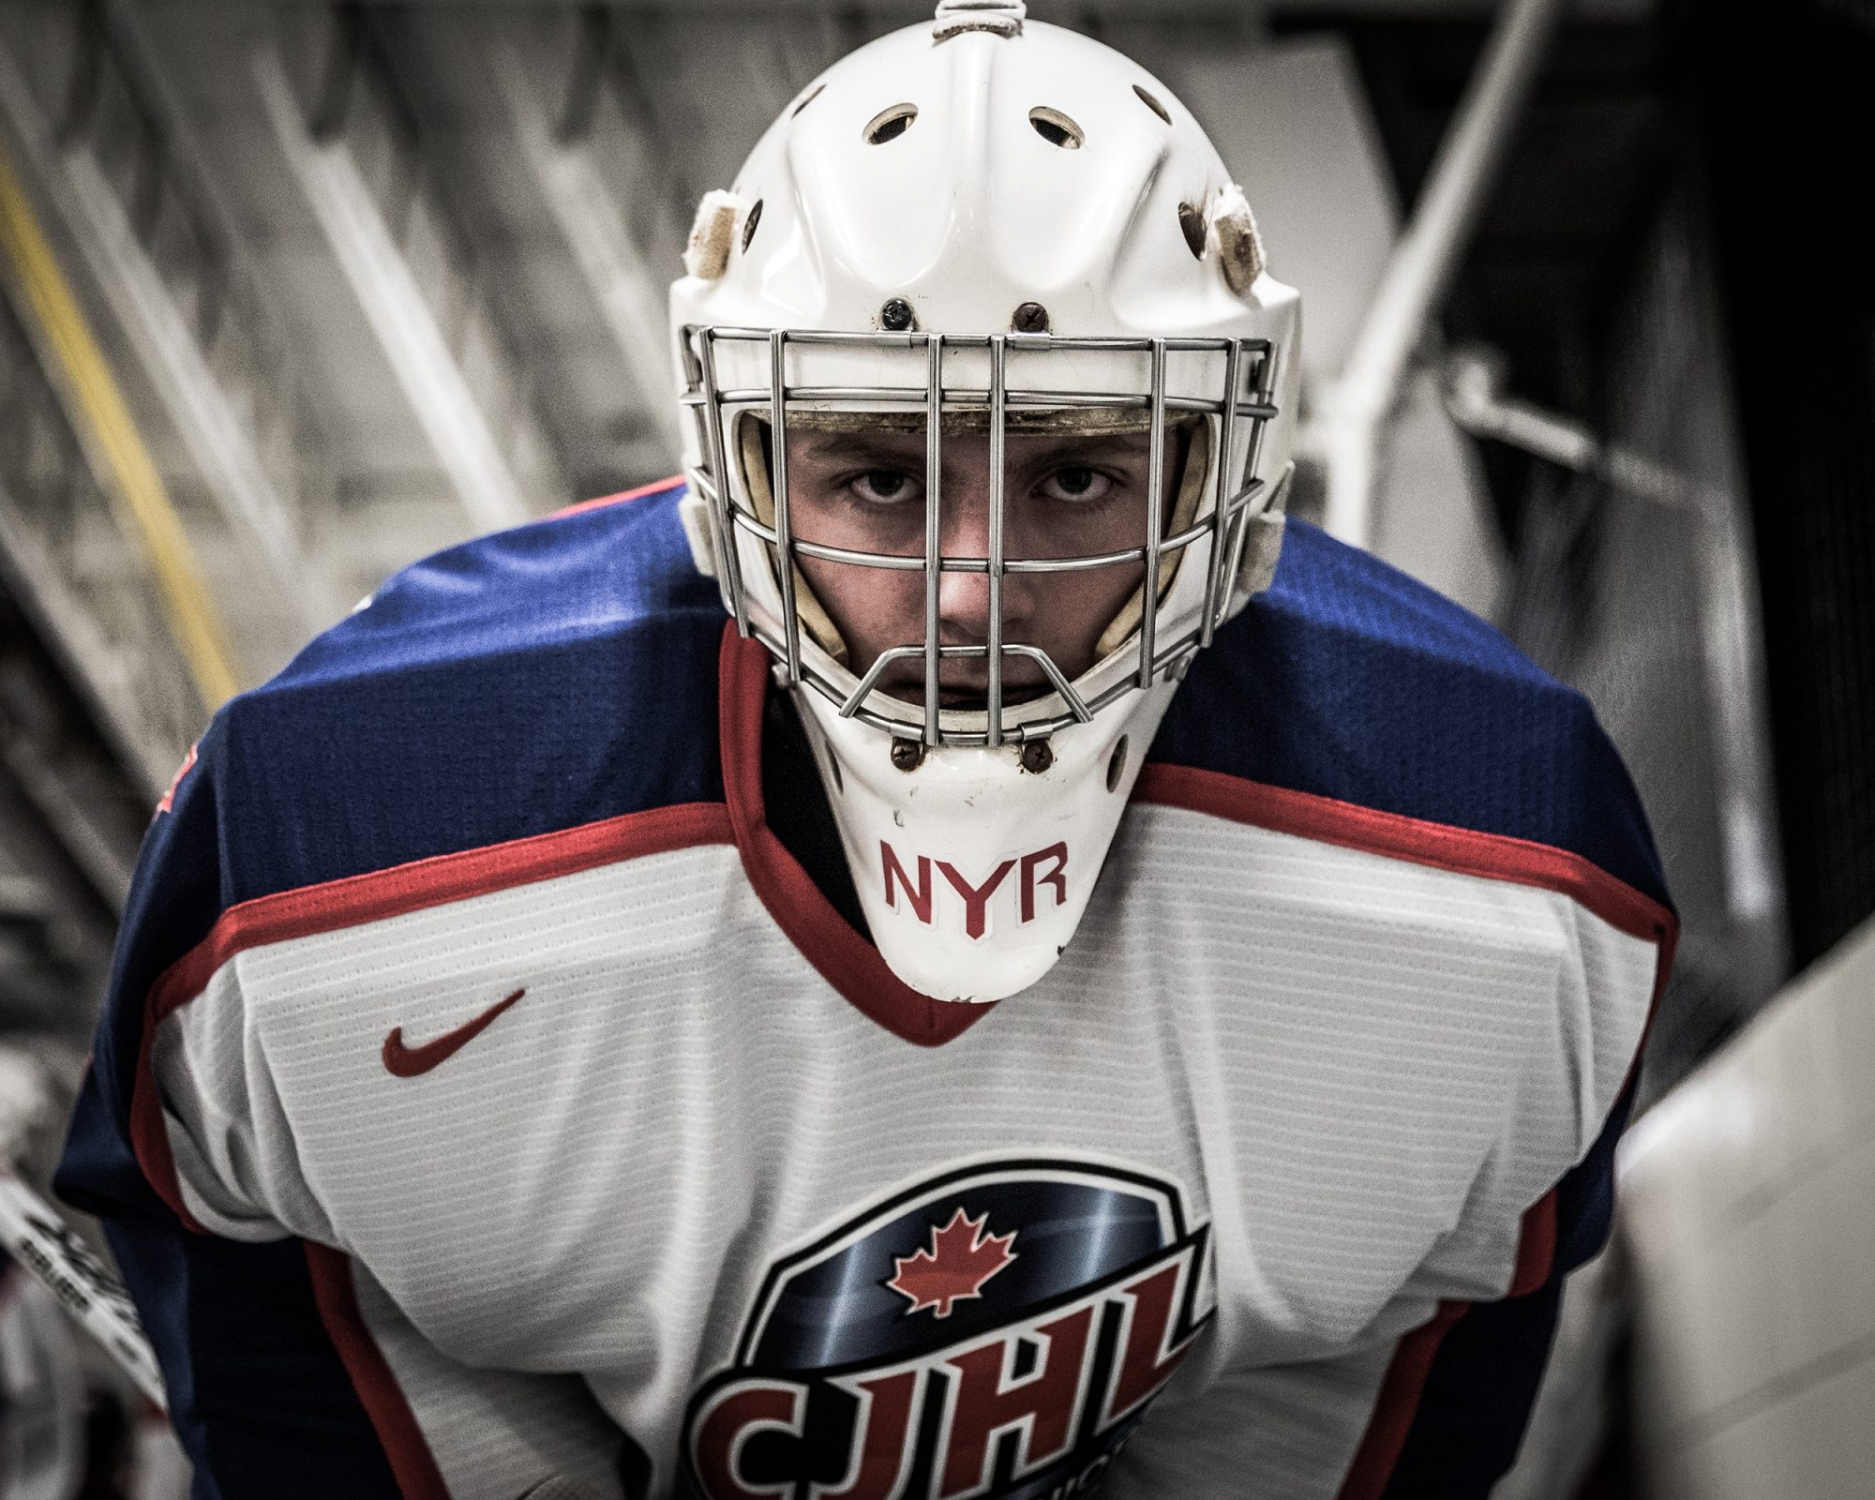 MISSISSAUGA, ON - JAN. 23, 2018: Jett Alexander of CJHL Prospect Team East looks down prior to pre-game warm-ups.